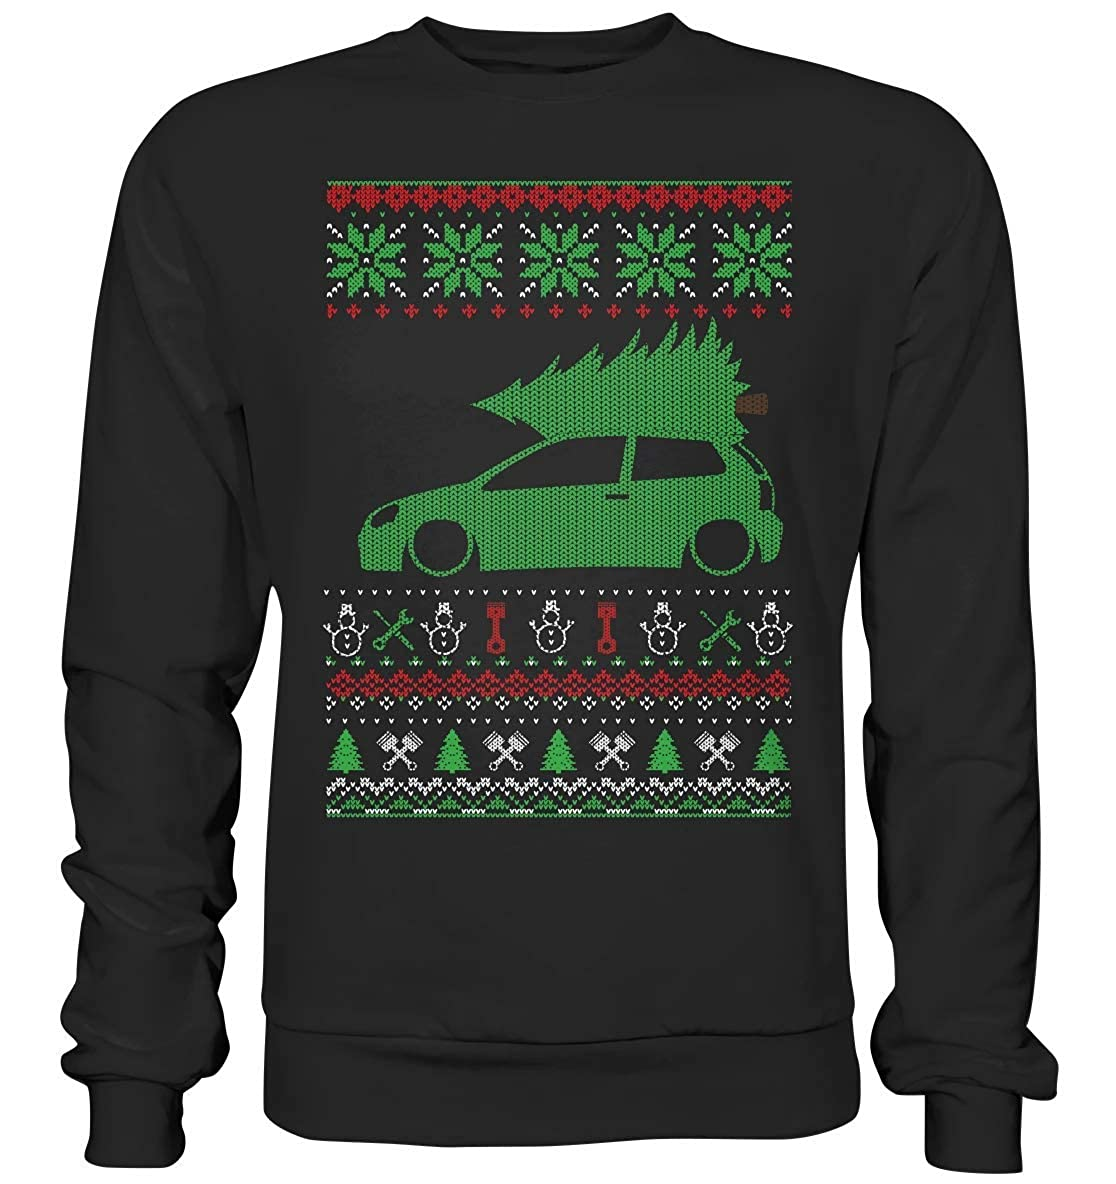 glstkrrn clothing Polo 9N3 Ugly Christmas Sweater suéter de ...